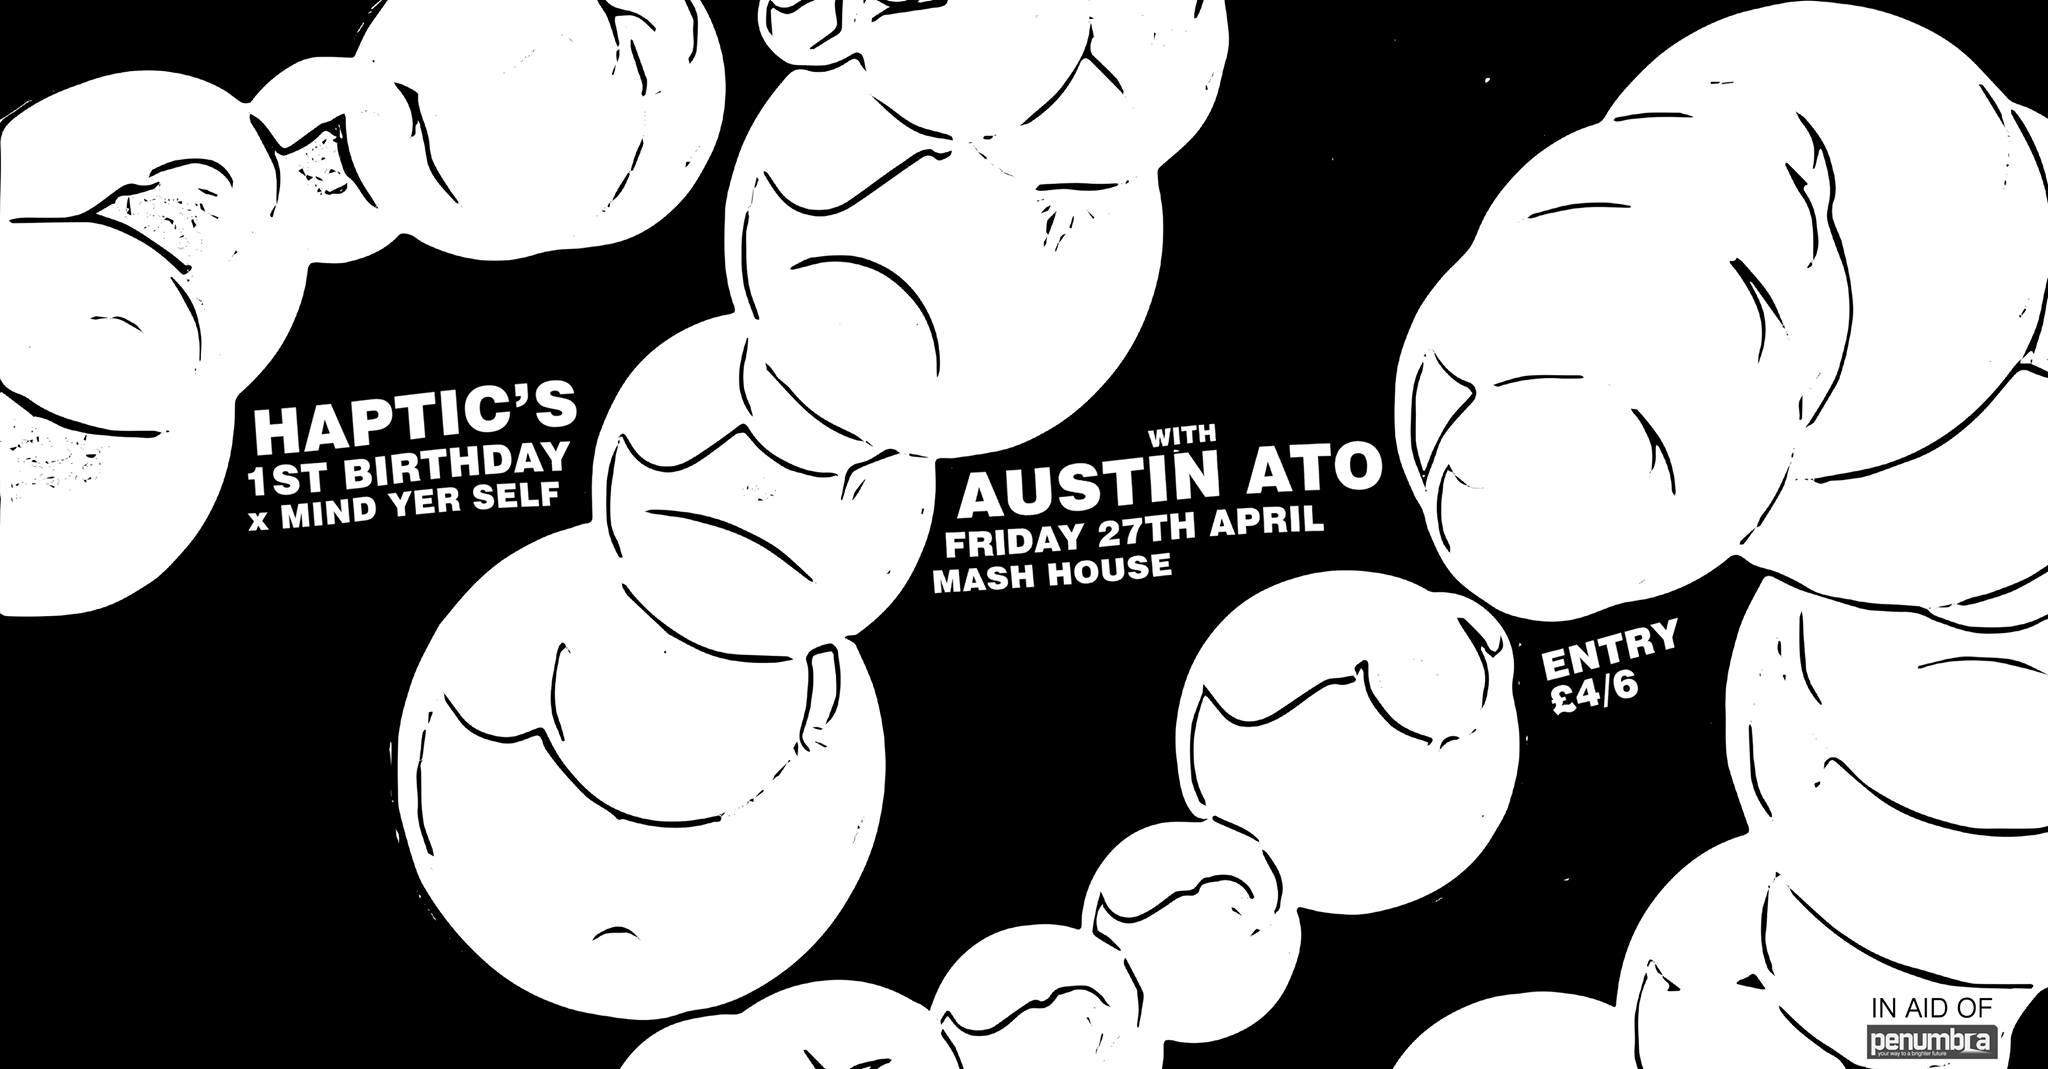 Haptic 1st Birthday x Mind Yer Self: Austin Ato